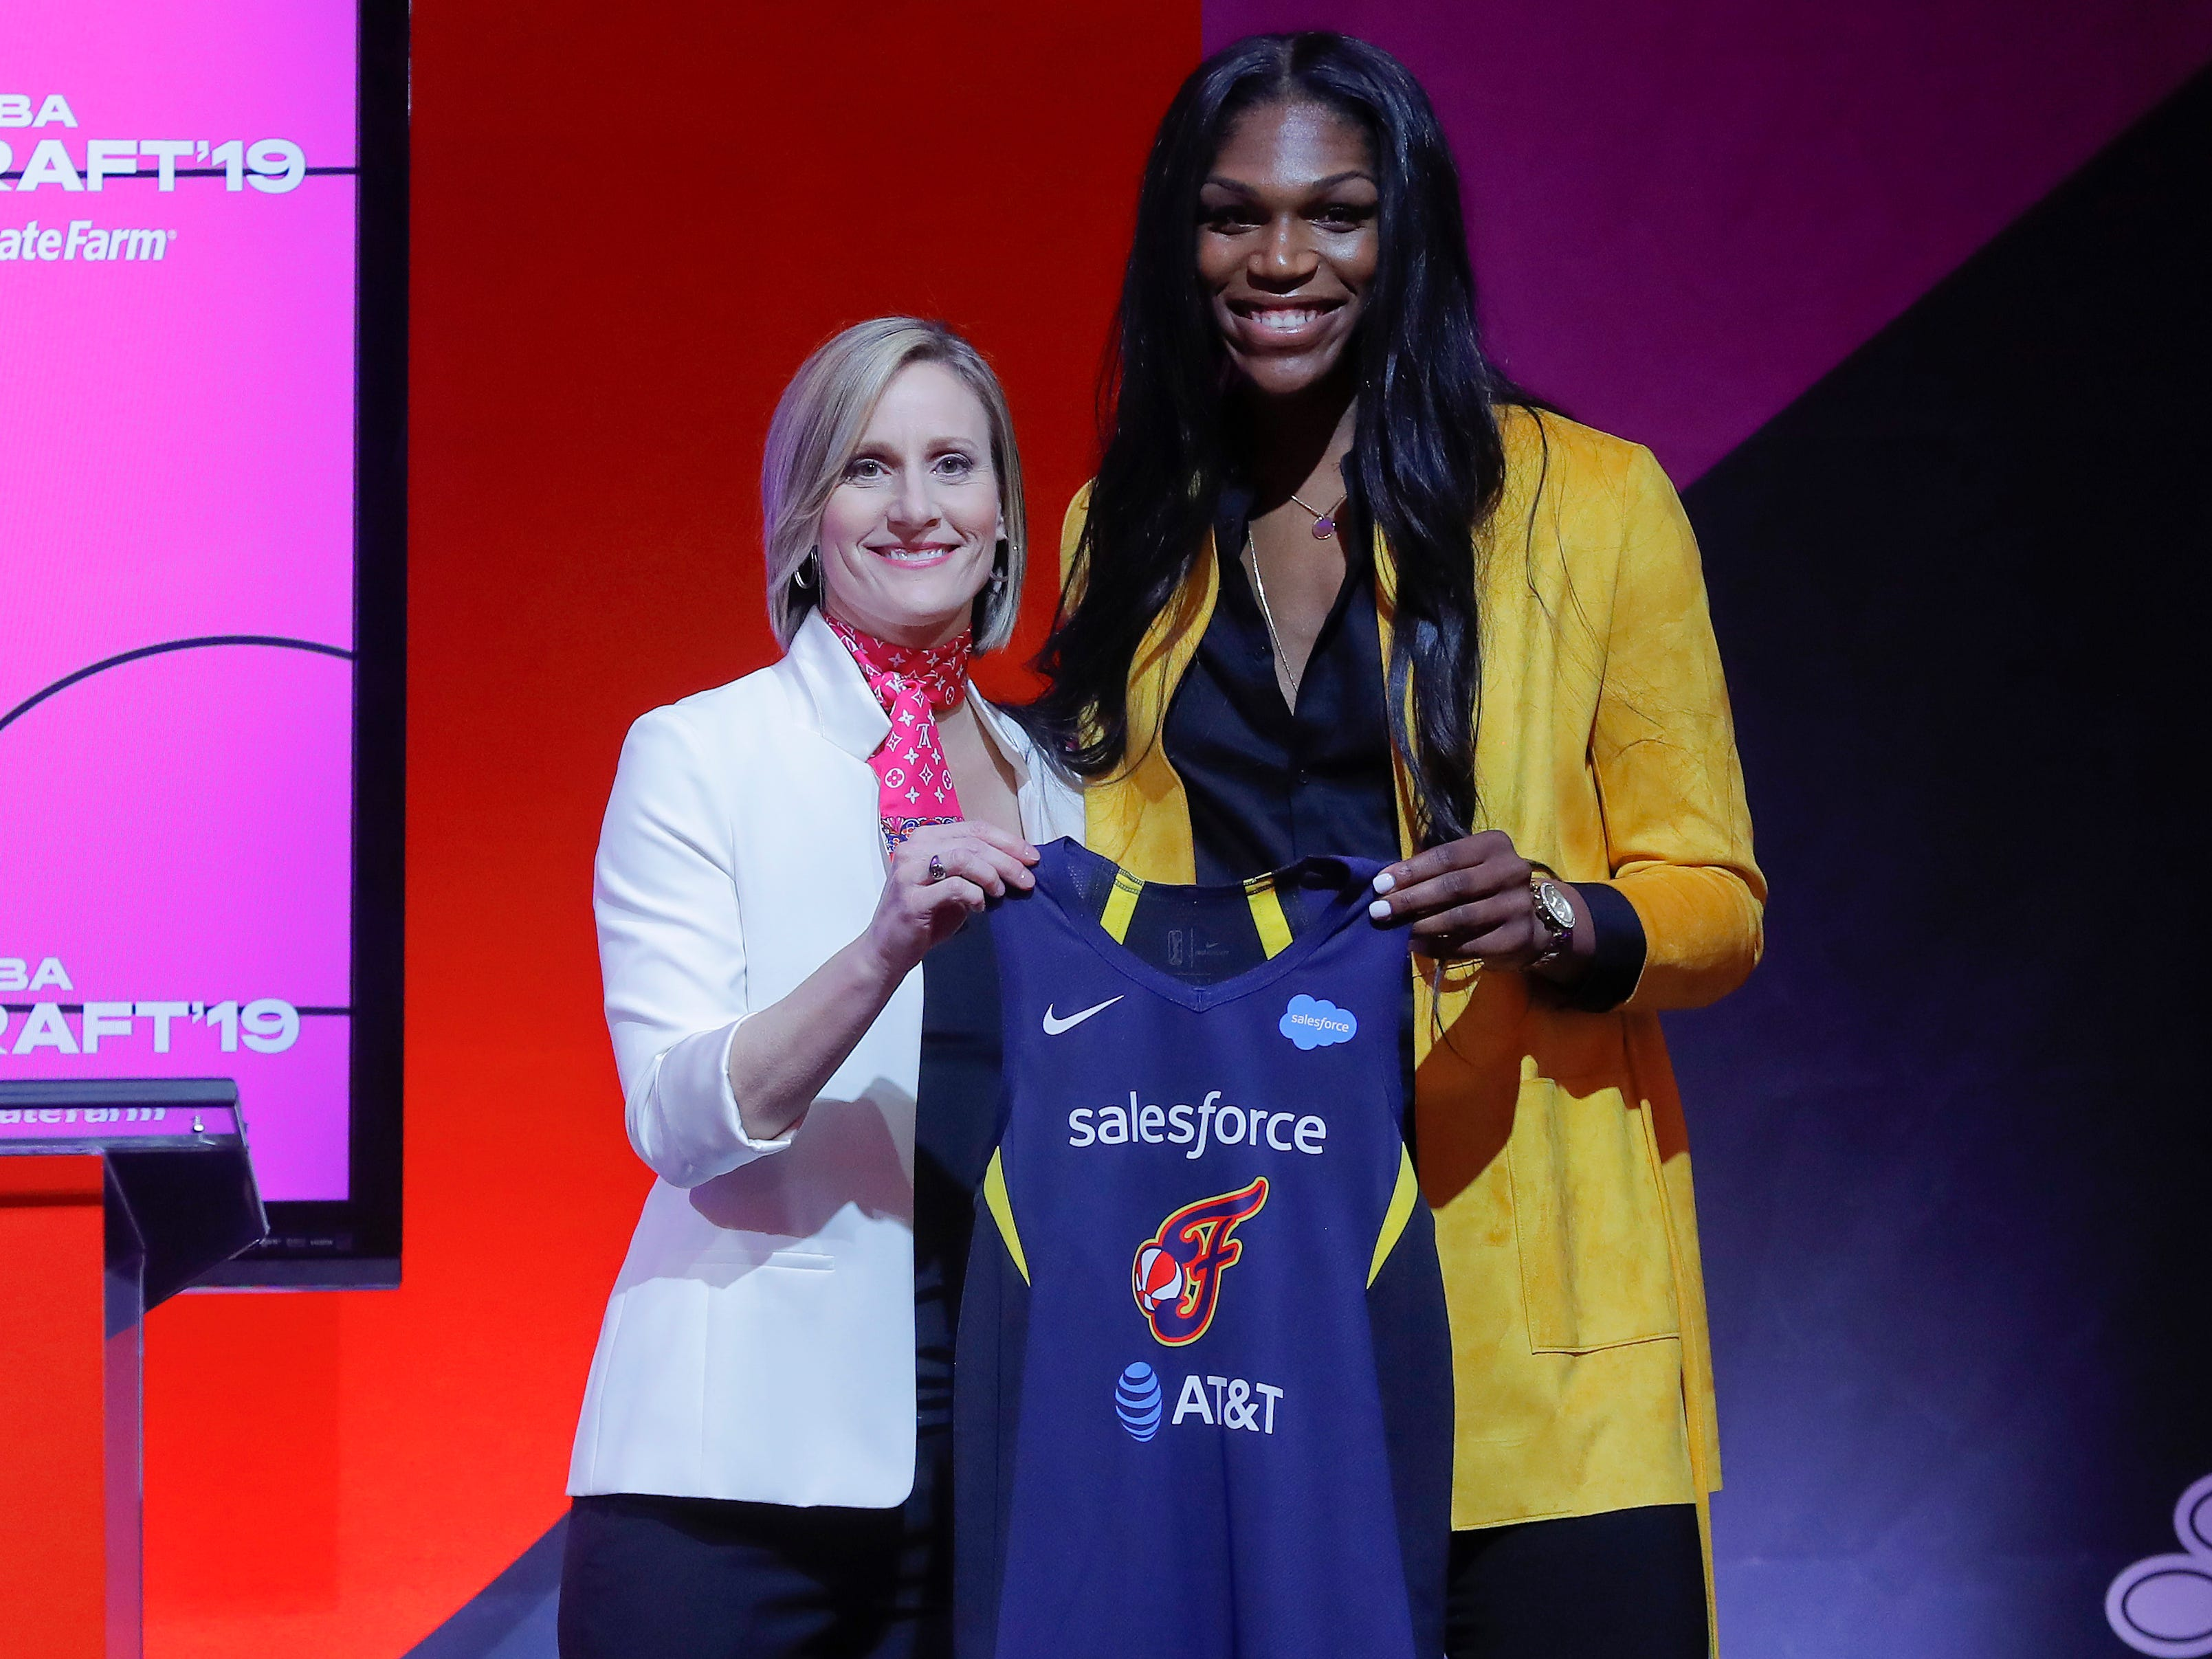 Mississippi State's Teaira McCowan poses for a photo with WNBA COO Christy Hedgpeth after being selected by the Indiana Fever as the third overall pick in the WNBA draft.